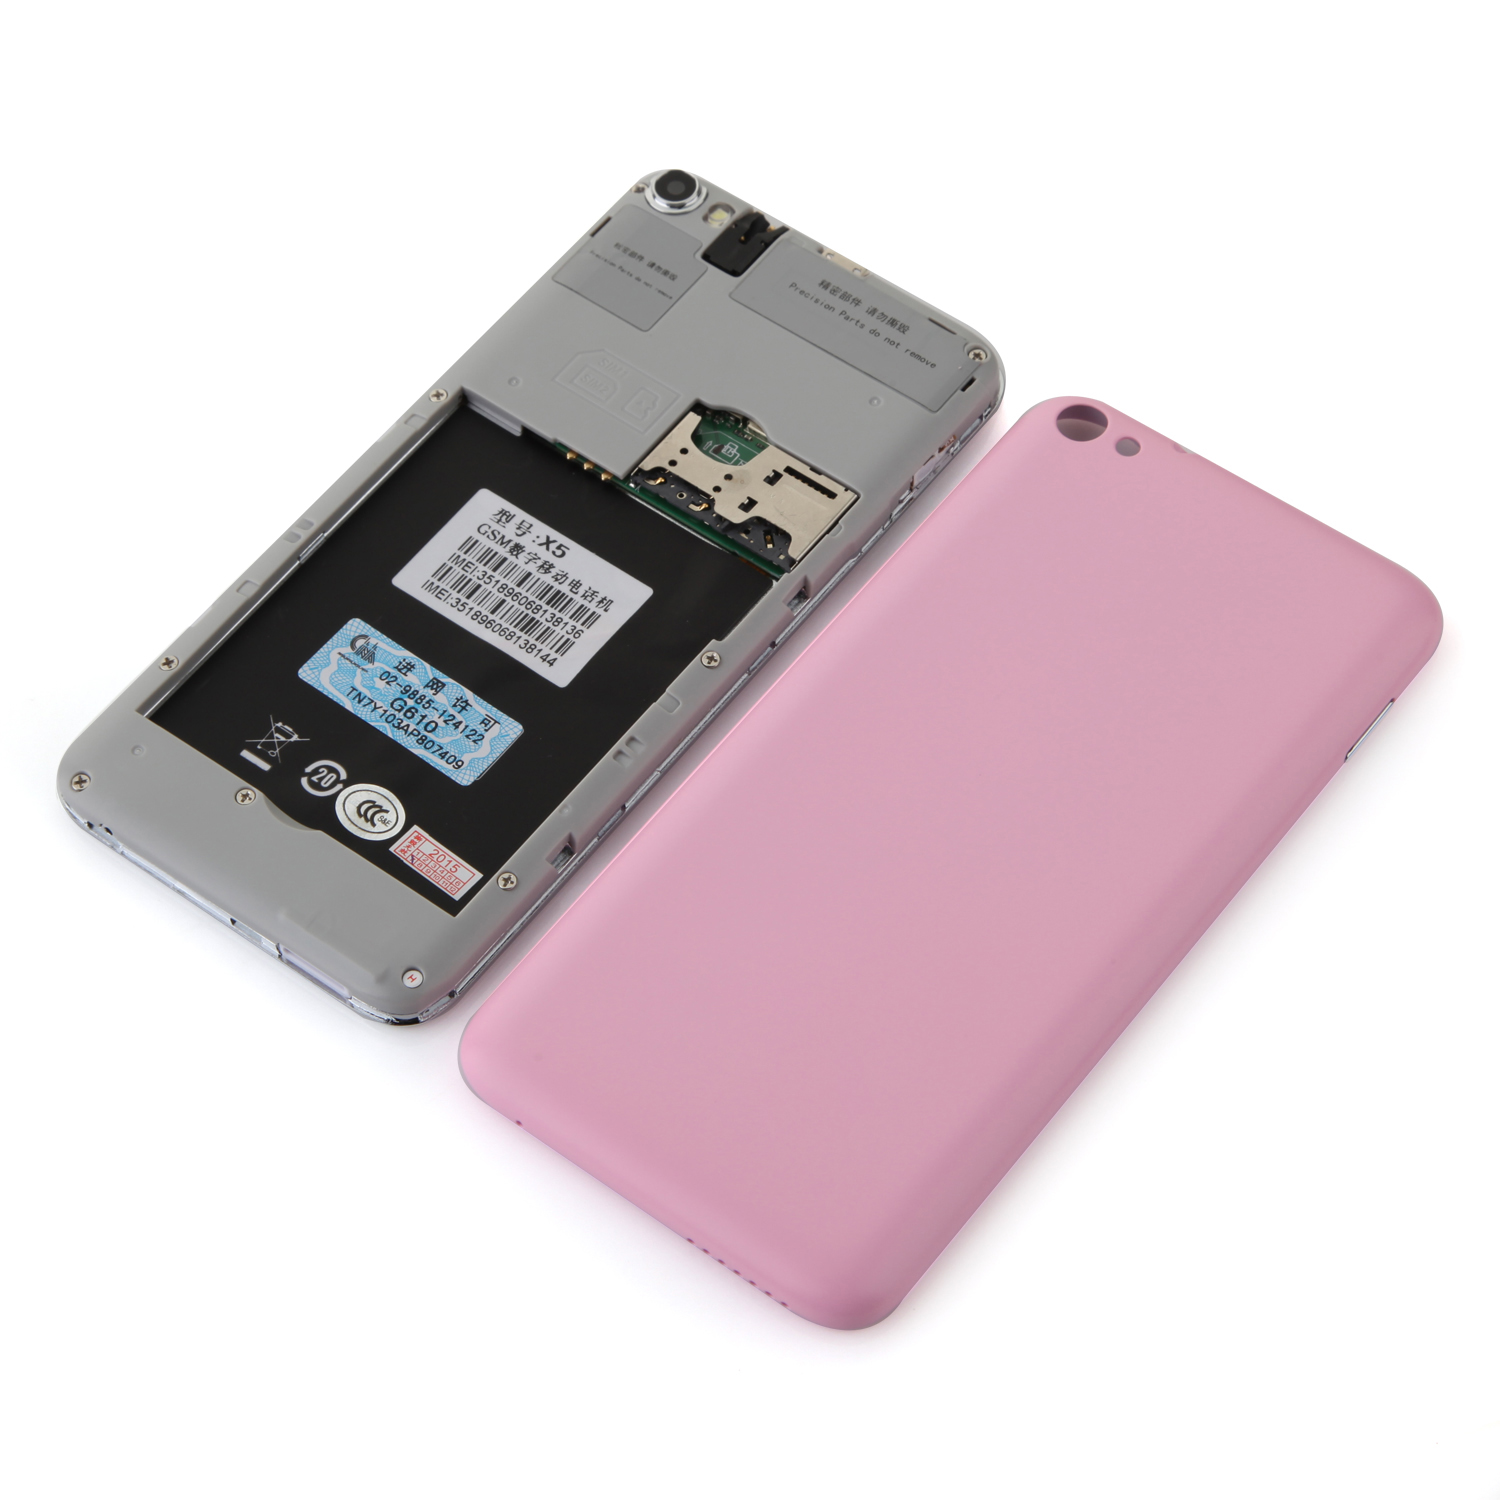 Tengda X5 Smartphone 4.5 Inch SC6825 Dual Core Android 4.0 Dual Camera Pink